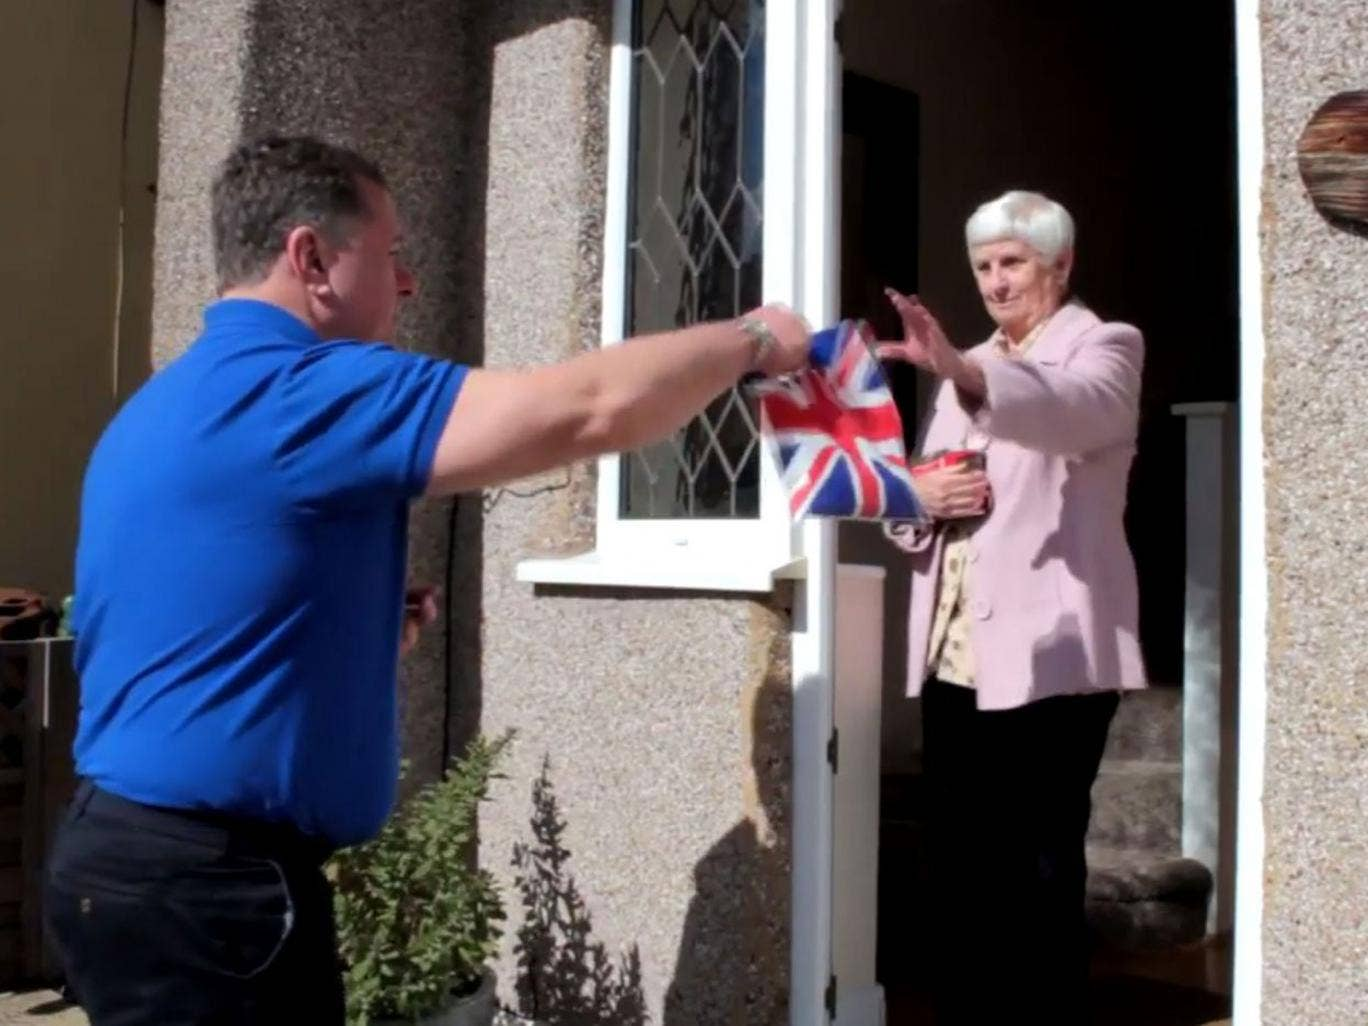 A scene from the BNP's YouTube video advising activists on food donations